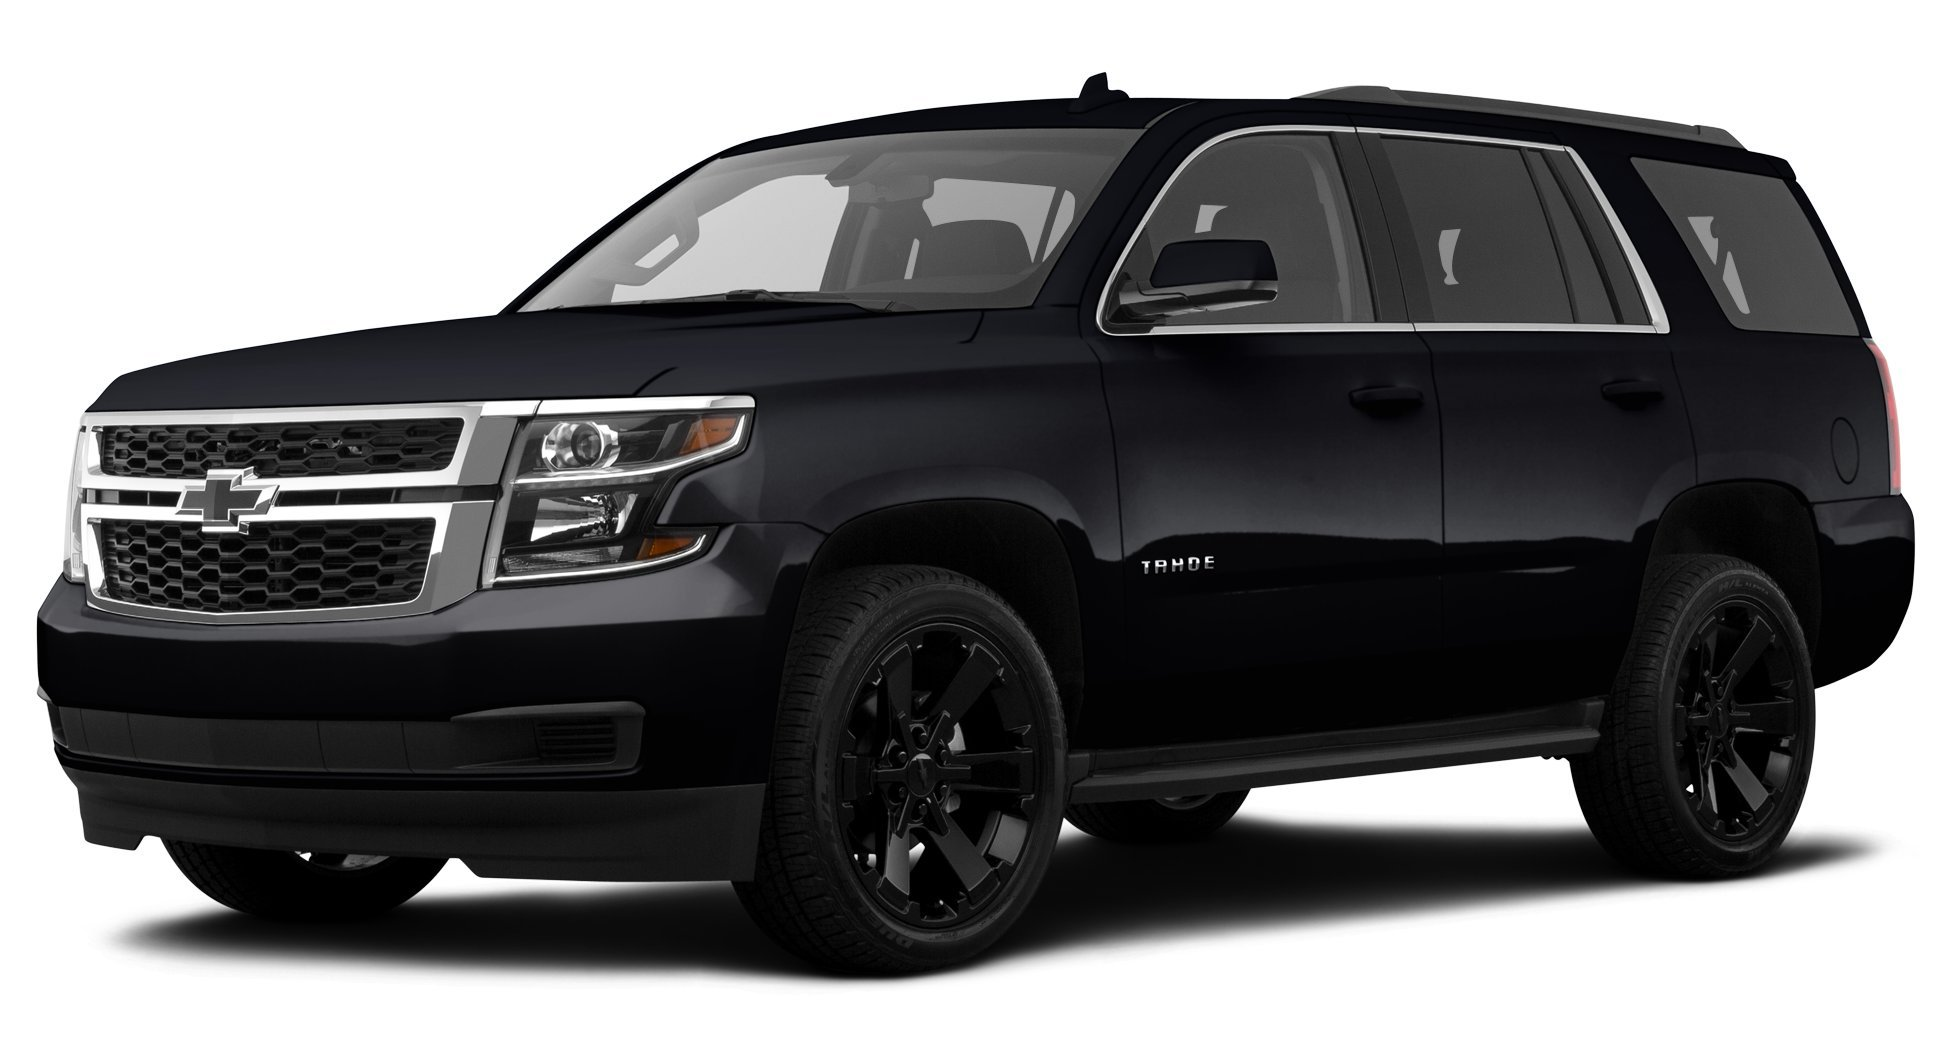 2018 Two Door Tahoe >> Amazon Com 2018 Chevrolet Tahoe Reviews Images And Specs Vehicles